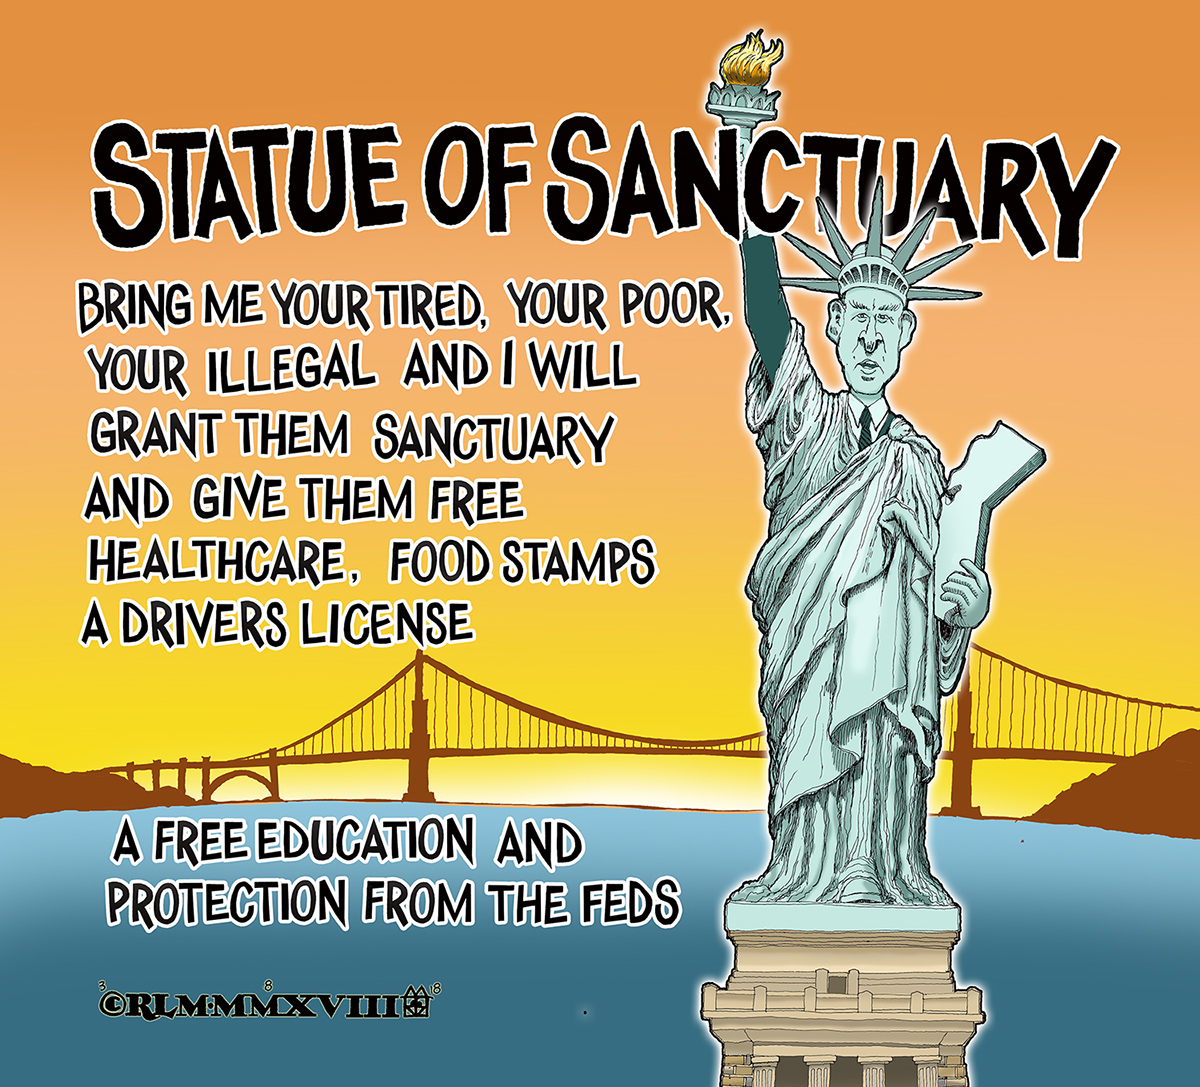 THE STATUE OF SANCTUARY